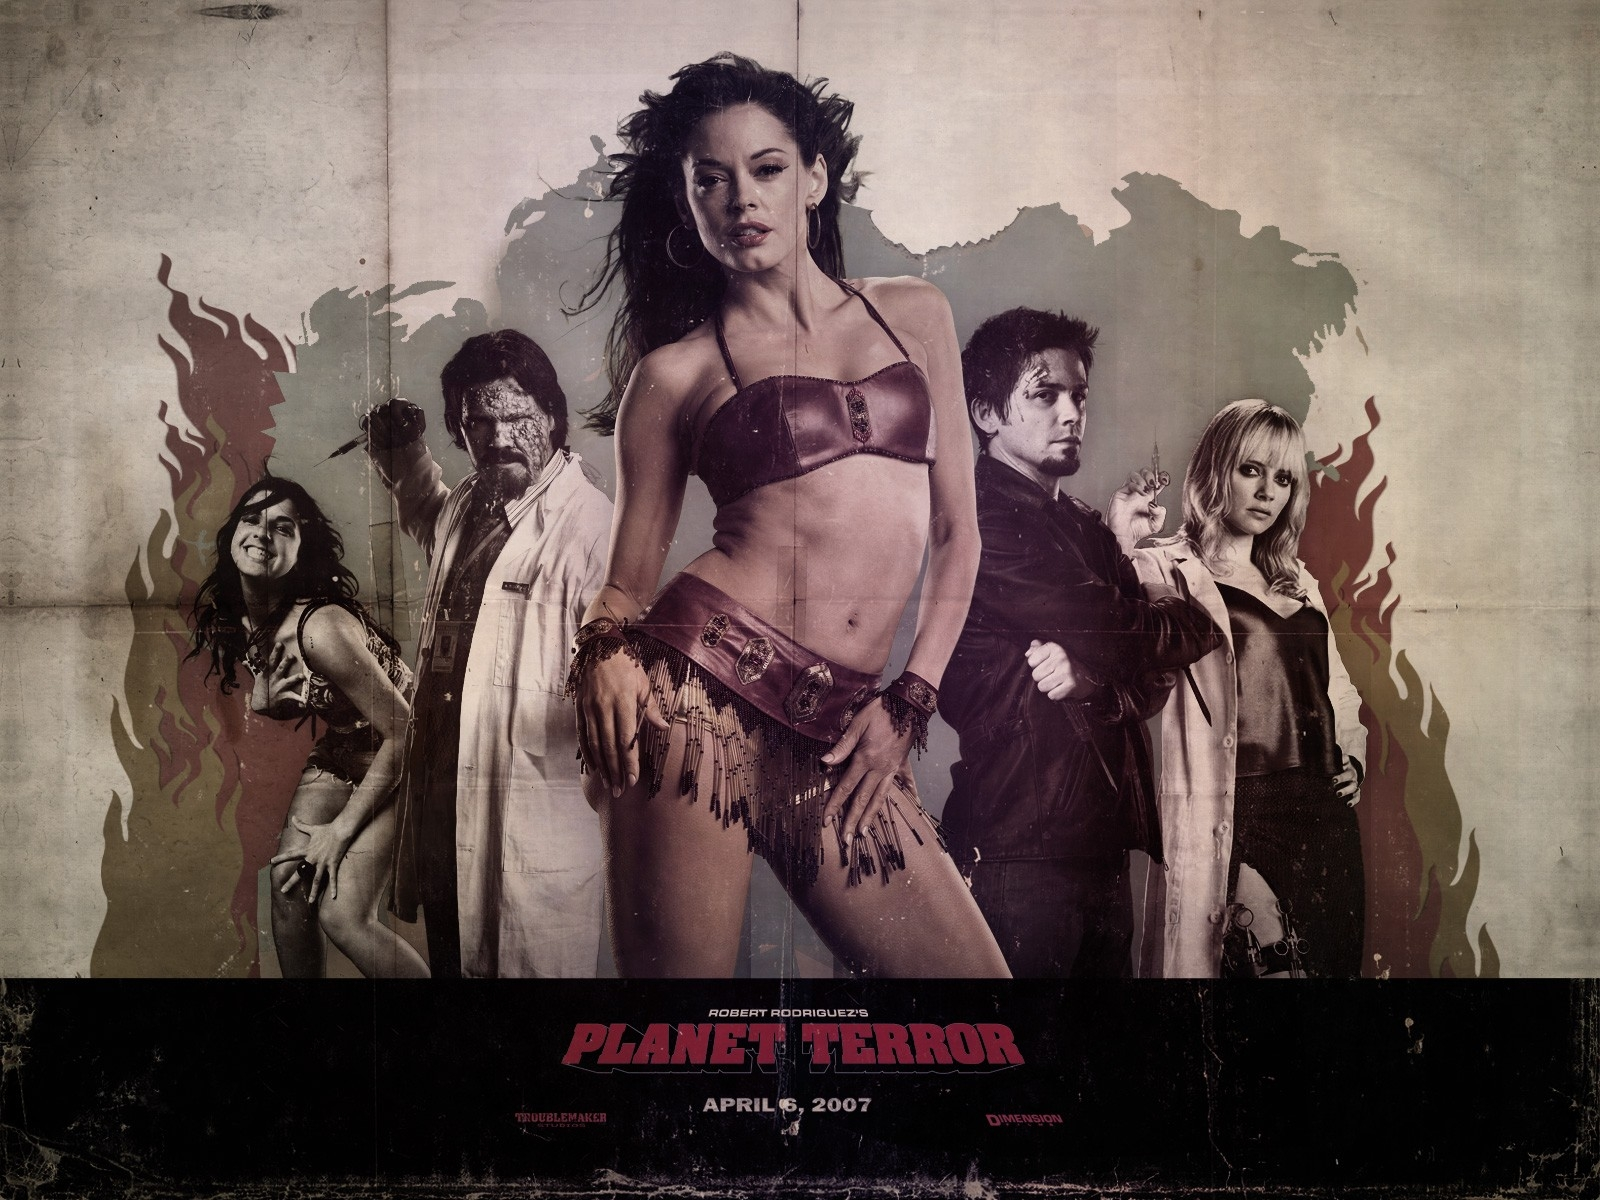 Un sexy wallpaper del film Grindhouse con Rose McGowan